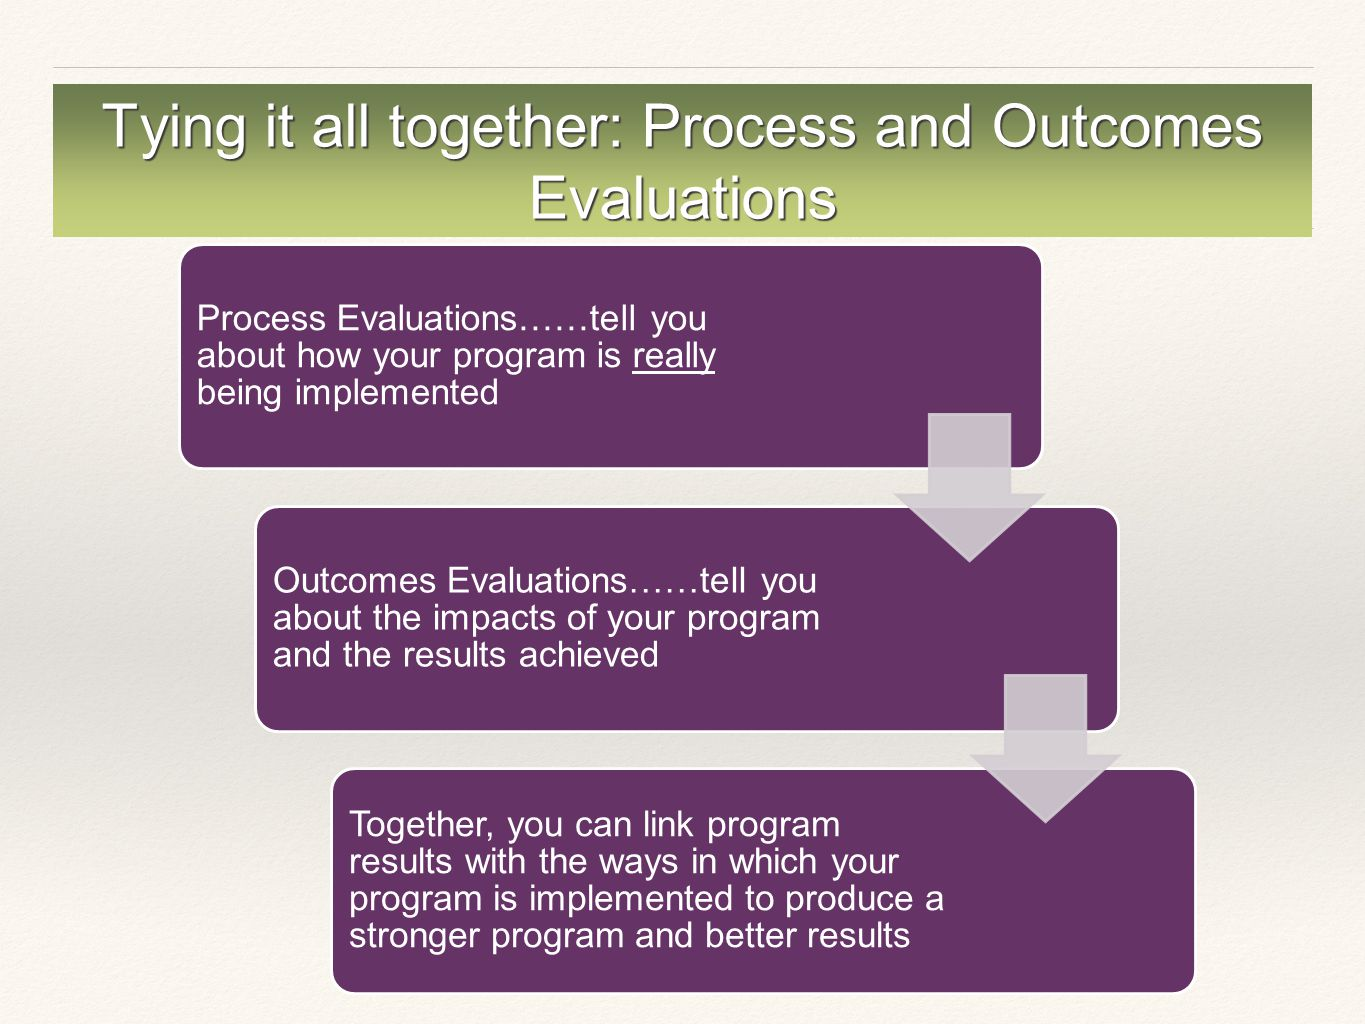 Tying it all together: Process and Outcomes Evaluations Process Evaluations……tell you about how your program is really being implemented Outcomes Evaluations……tell you about the impacts of your program and the results achieved Together, you can link program results with the ways in which your program is implemented to produce a stronger program and better results